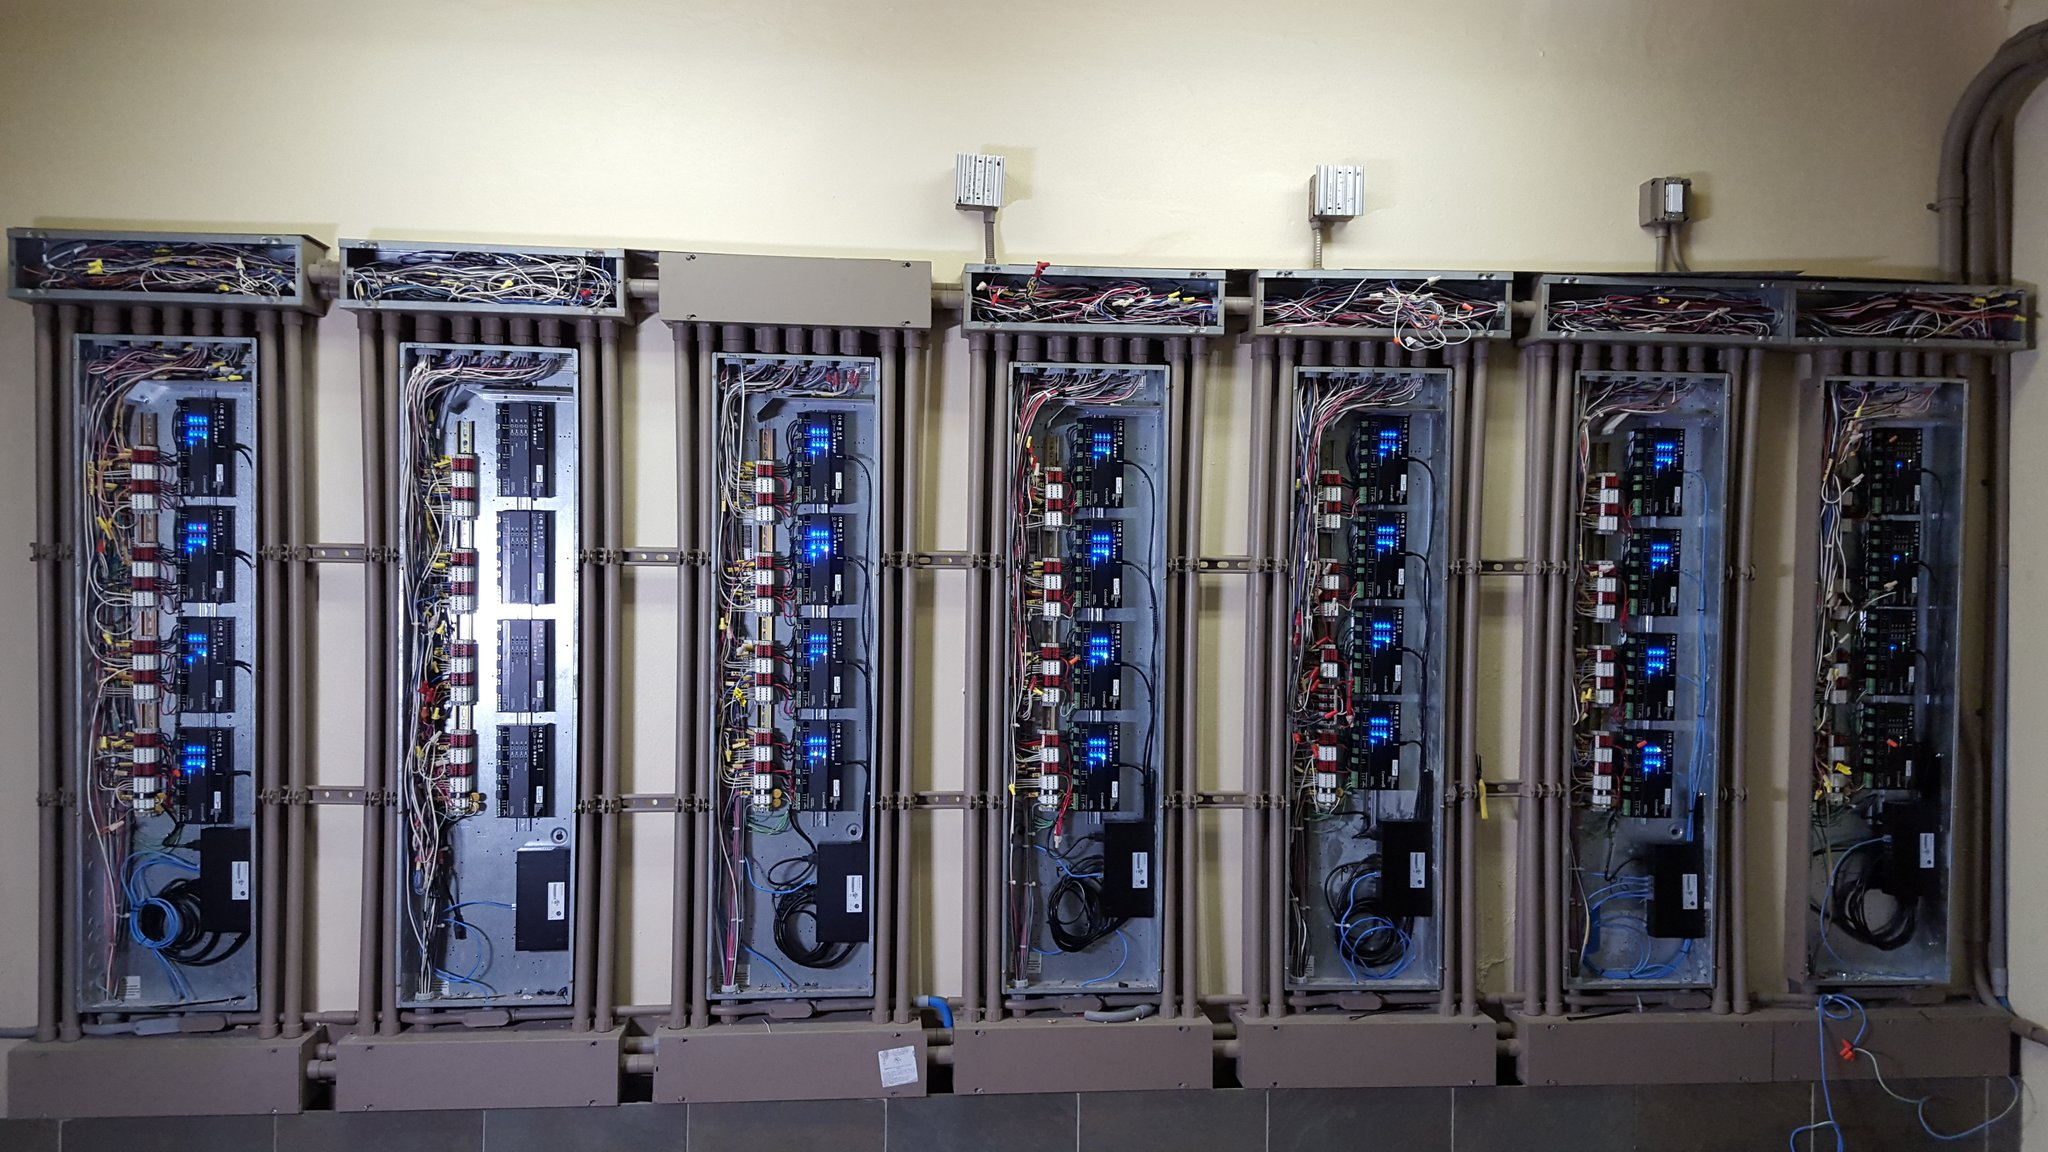 control4 wiring diagrams free tool for flow chart diamond design llc on twitter quotnew panelized